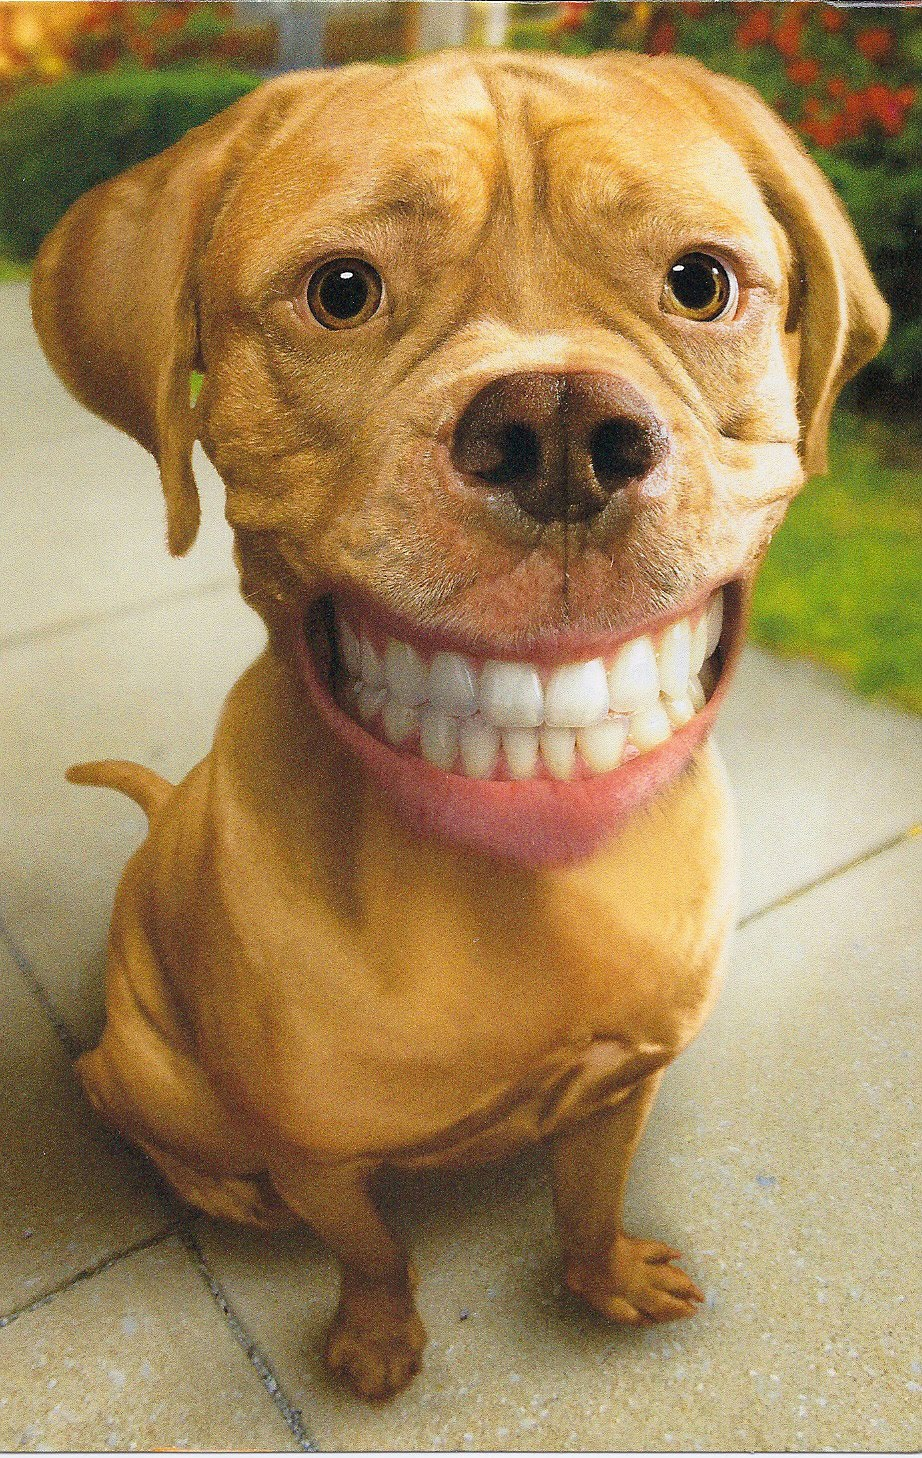 Animals Smiling With Human Teeth | www.imgkid.com - The ...